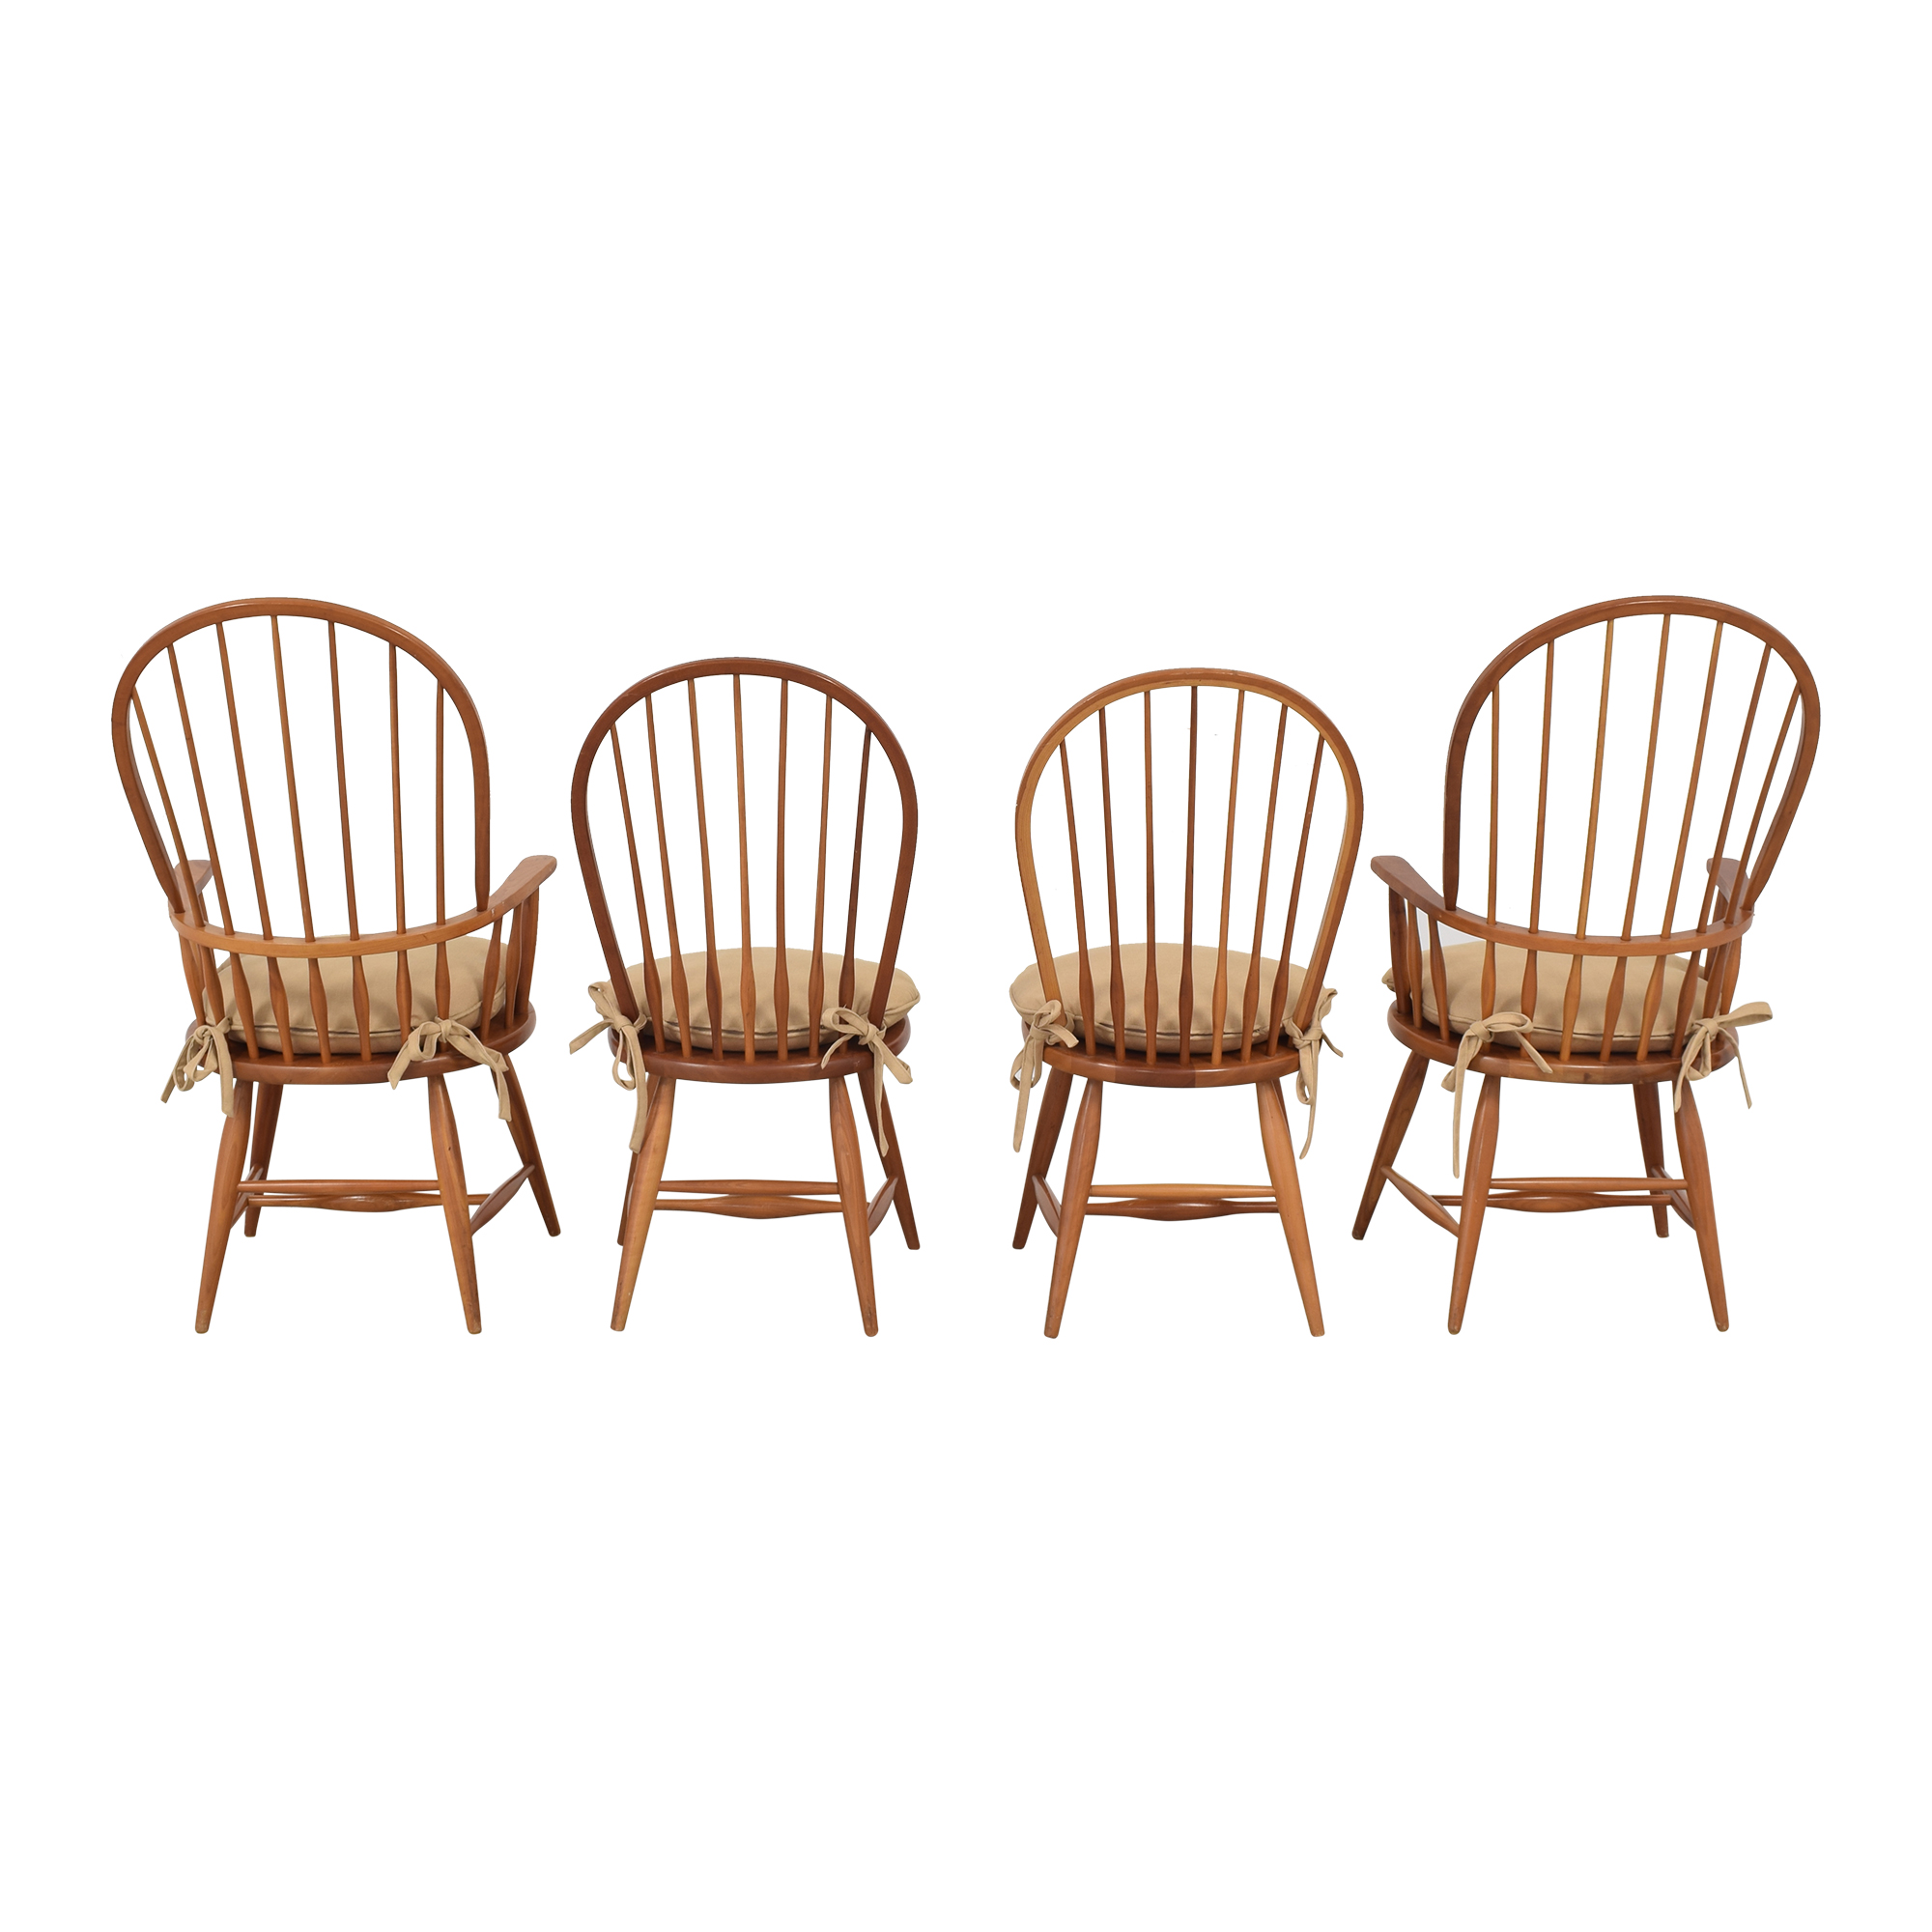 Asher Benjamin Studio Asher Benjamin Studio Windsor Back Dining Room Chairs on sale